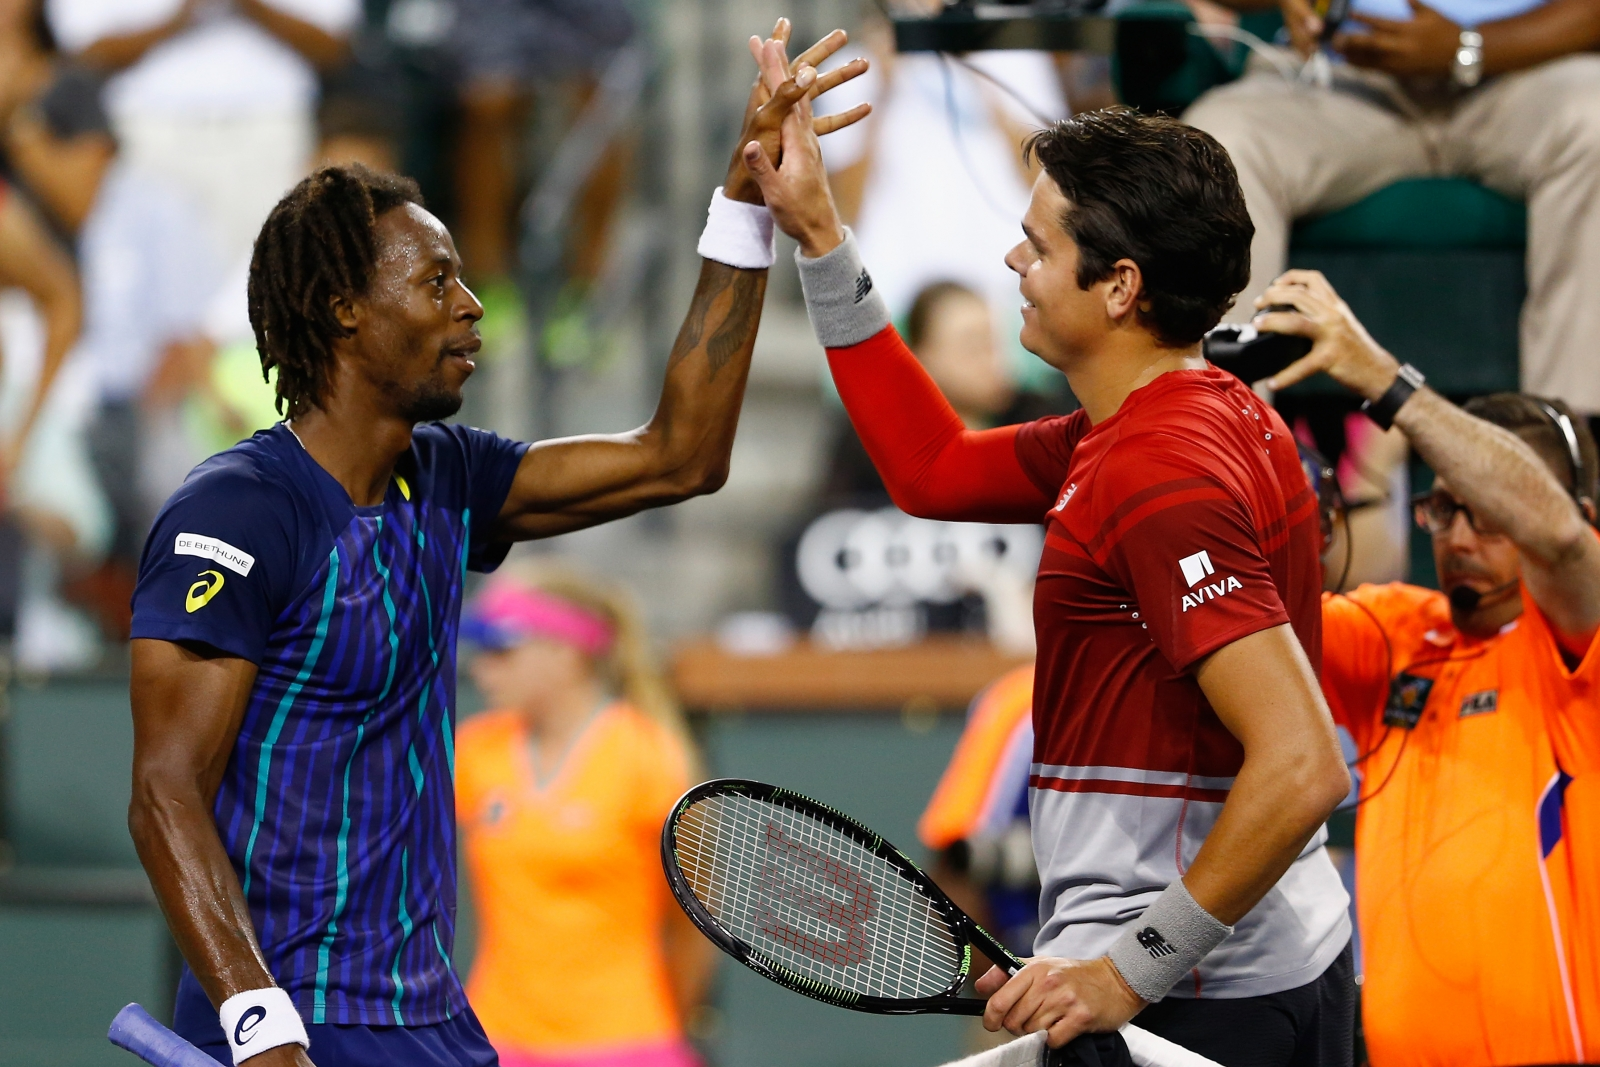 Milos Raonic and Gael Monfils